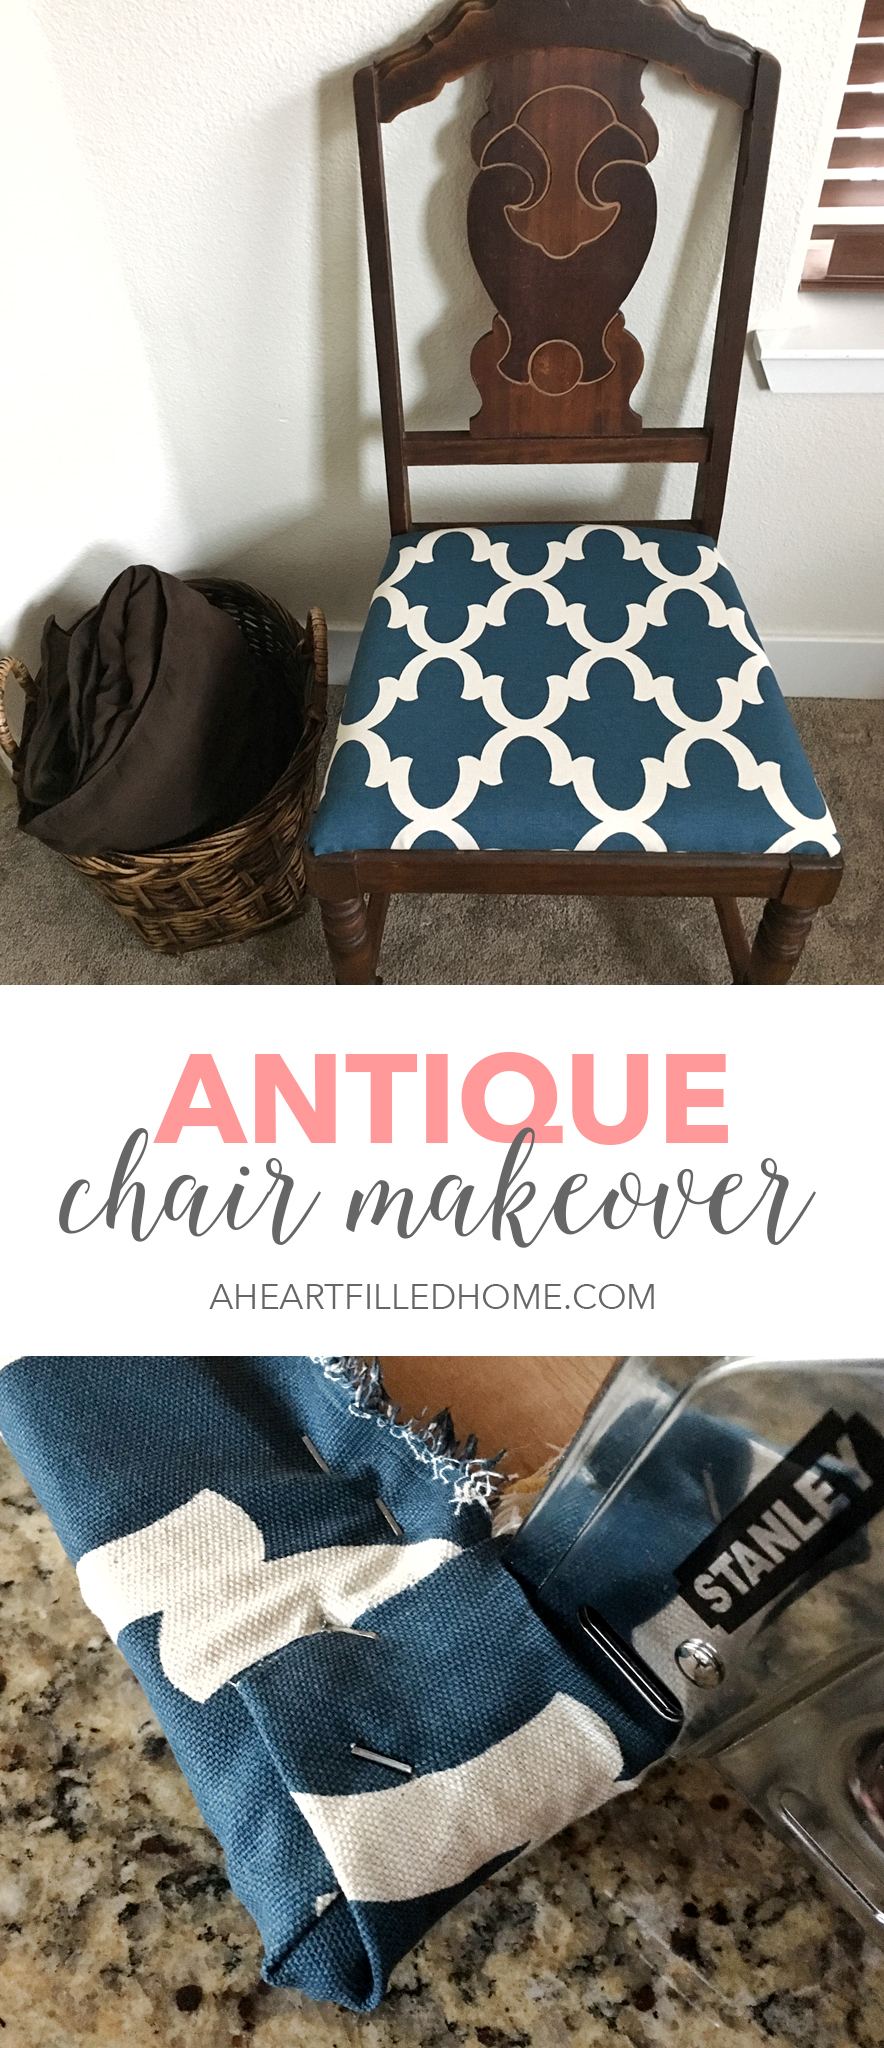 Antique Chair Makeover from A Heart Filled Home. Click to get the full makeover details and tutorial from aheartfilledhome.com